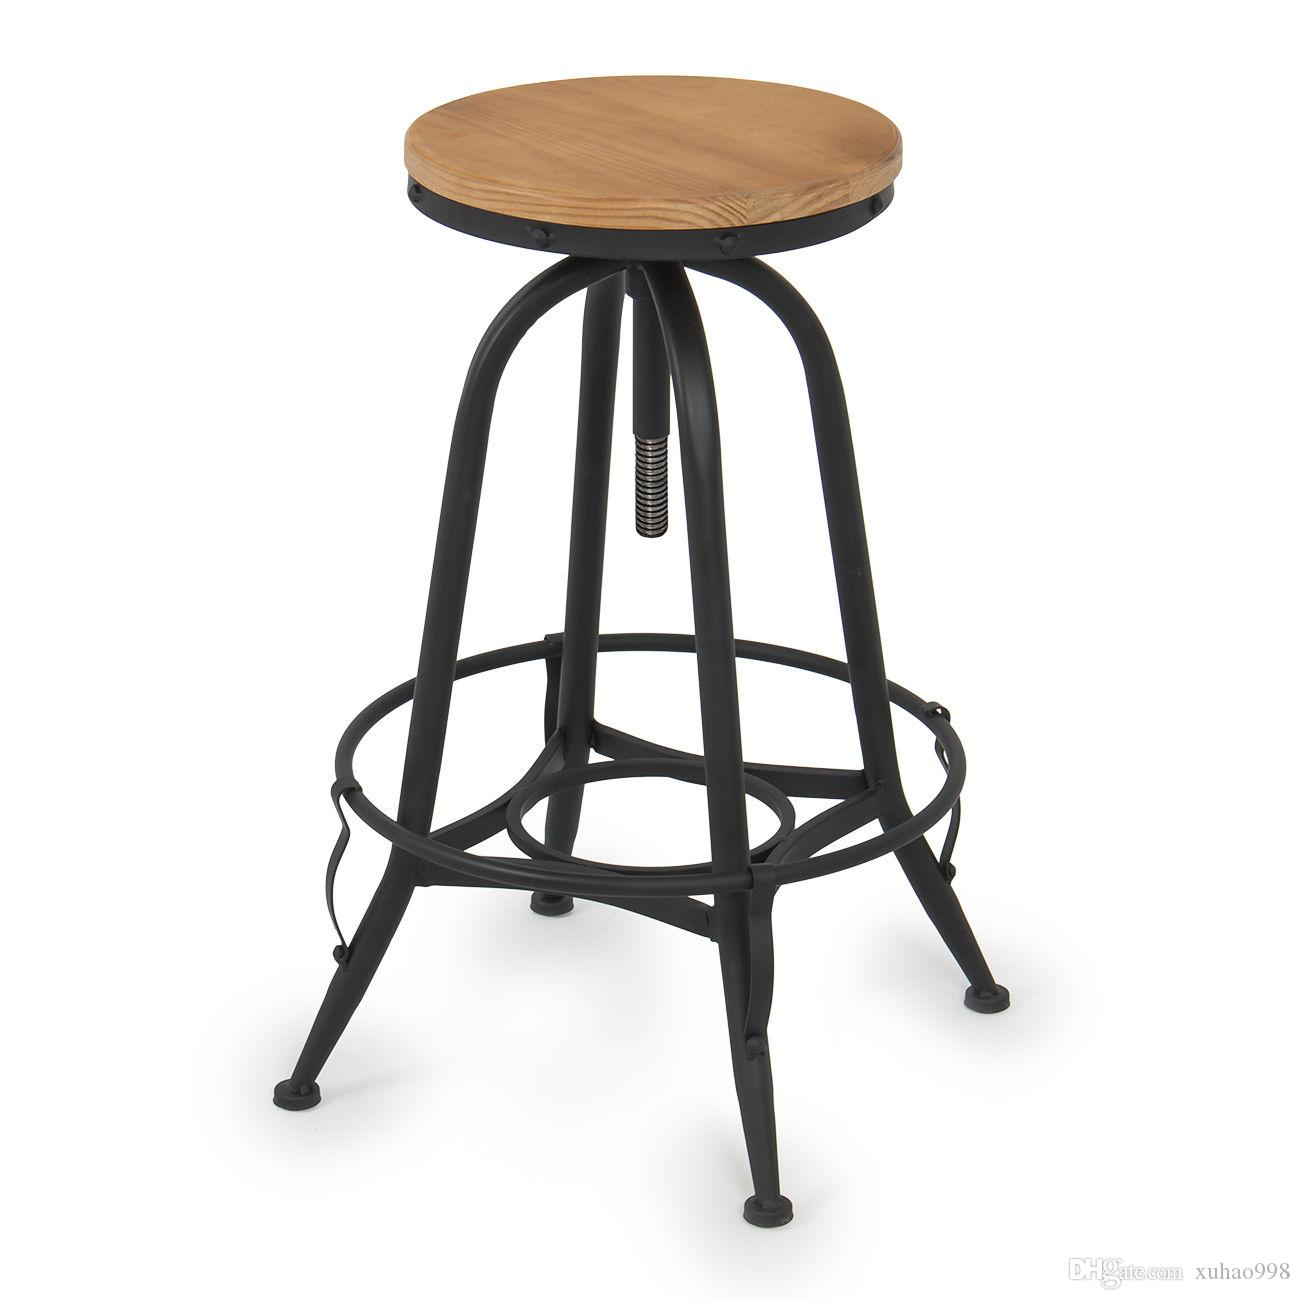 2018 Vintage Bar Stool Industrial Adjustable Height Swivel Home Kitchen  Counter Top From Xuhao998, $40.21 | Dhgate.Com